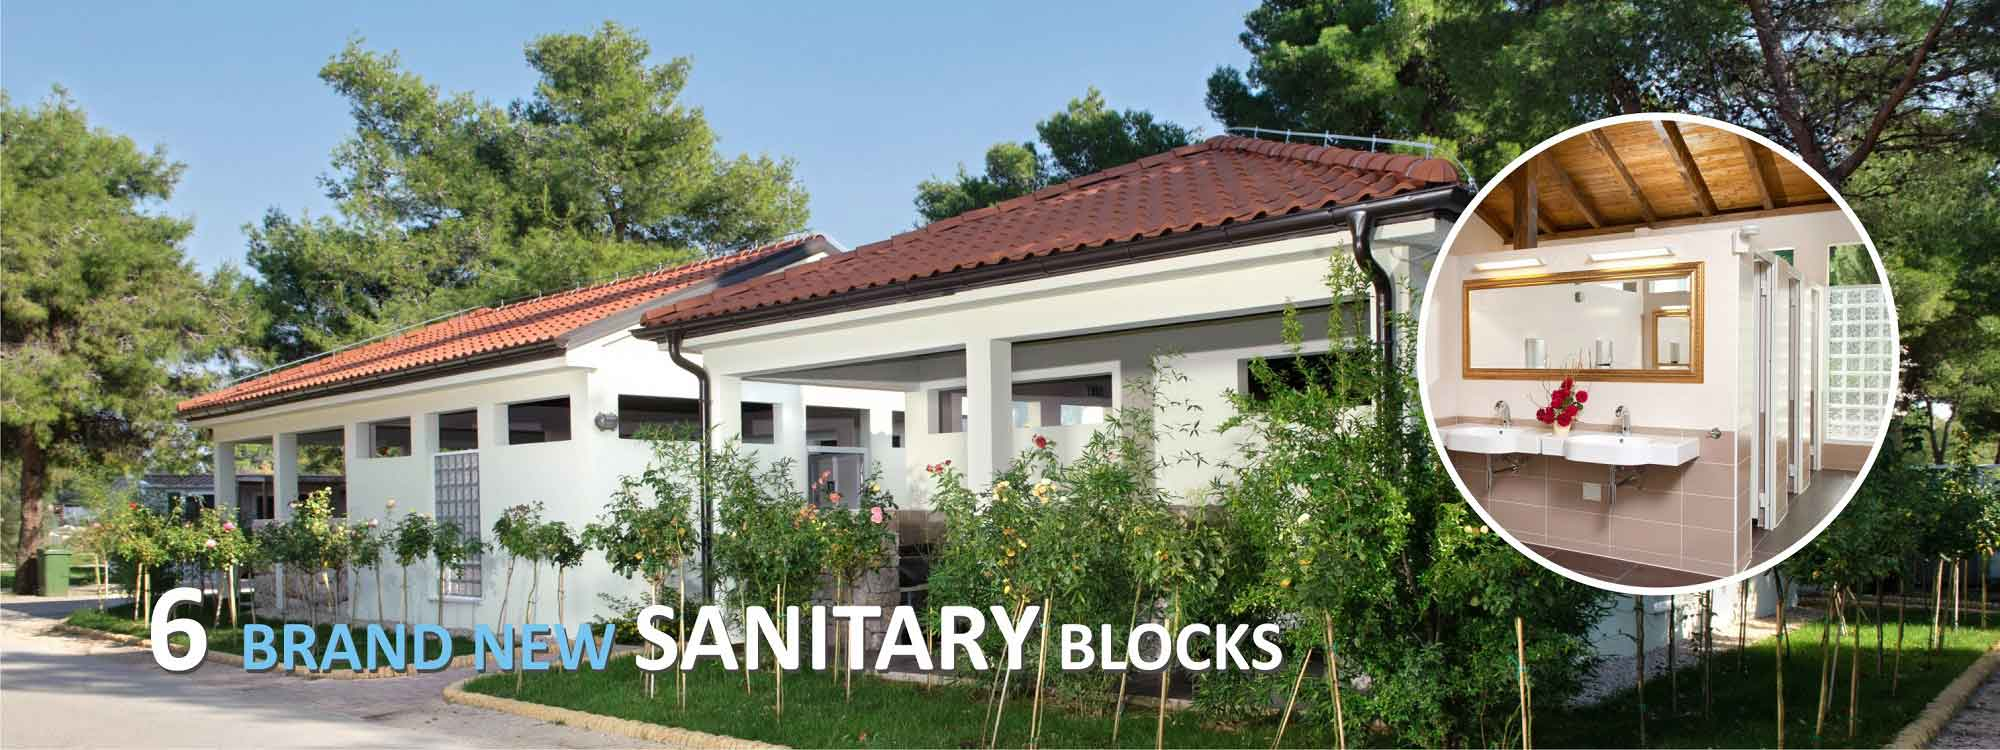 Solaris_camping_beach_resort_croatia_brand_new_sanitary_blocks